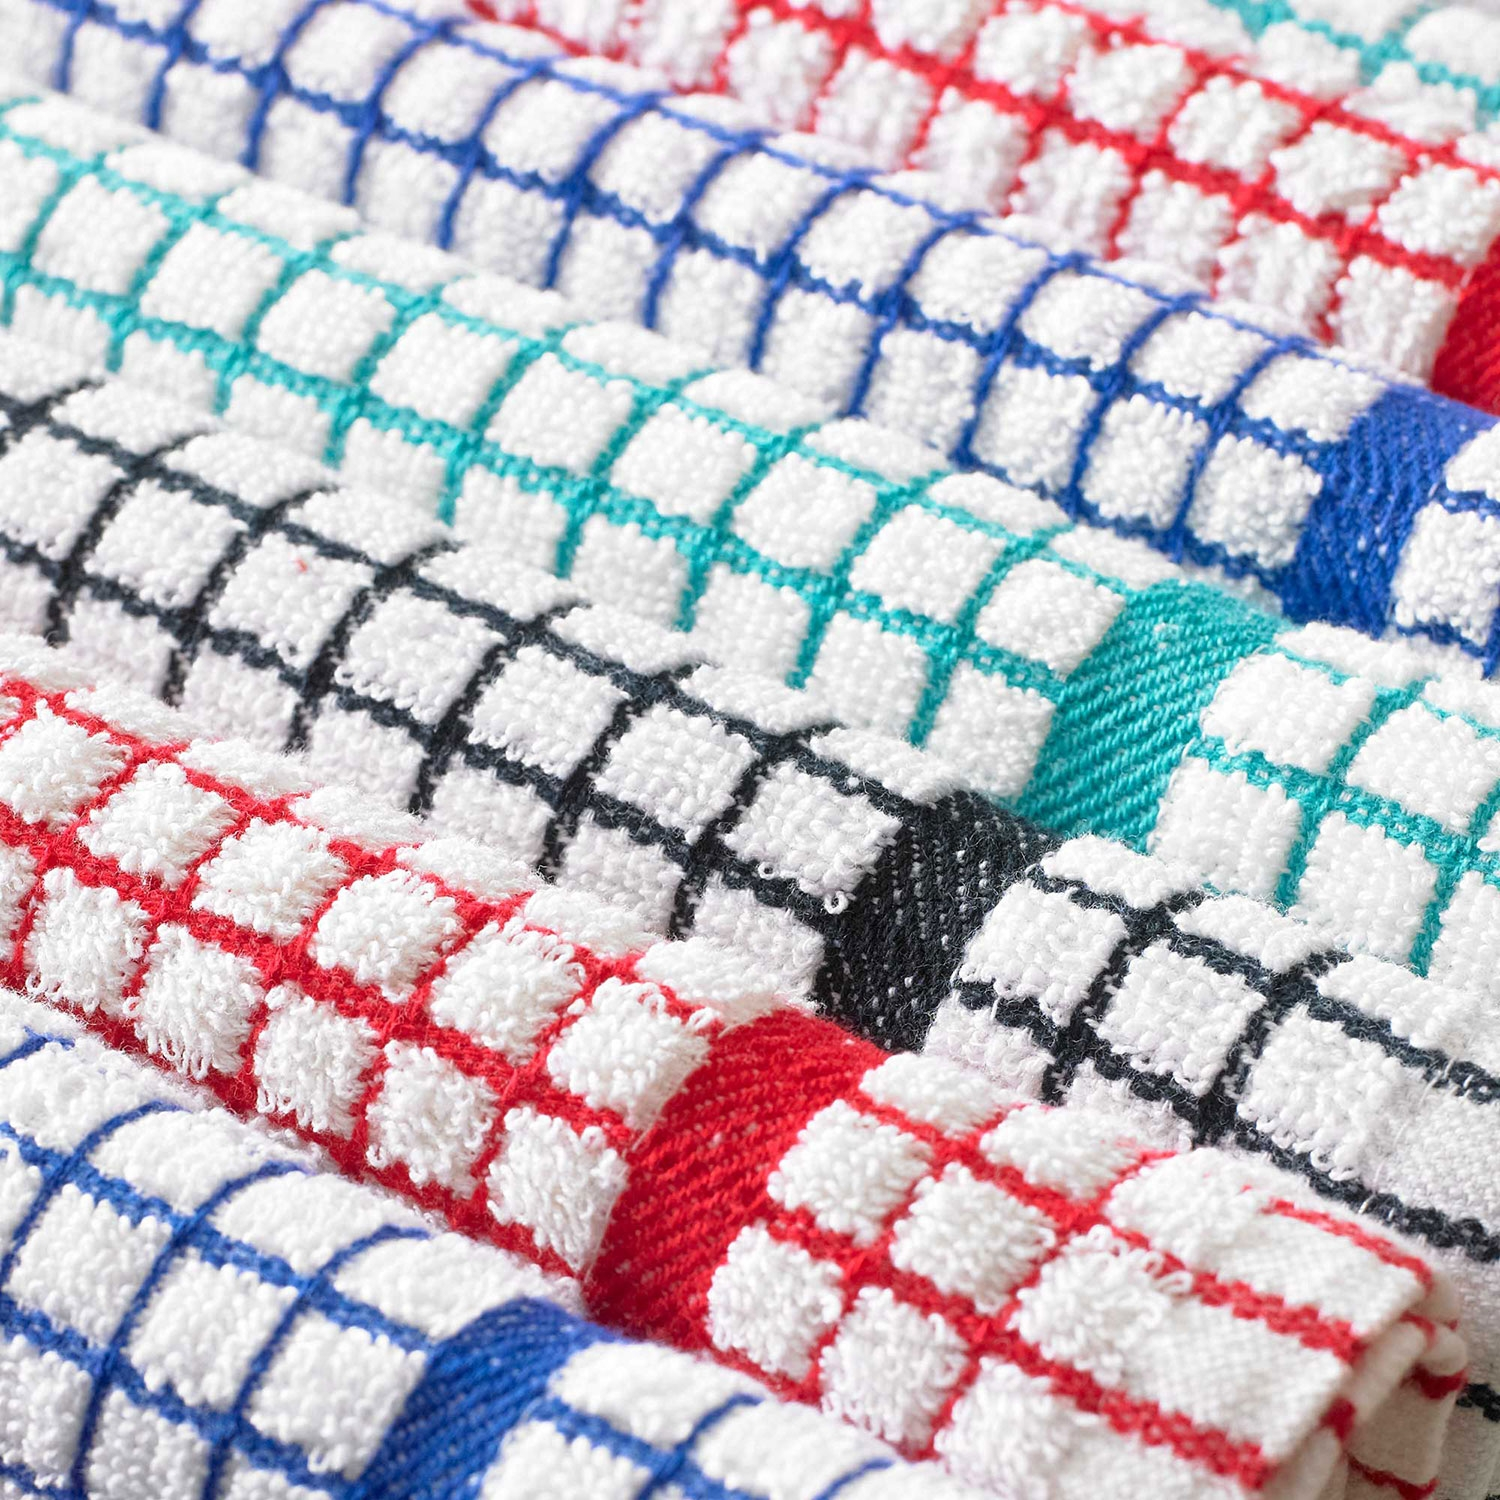 Kitchen-towel-close-up_1.jpg